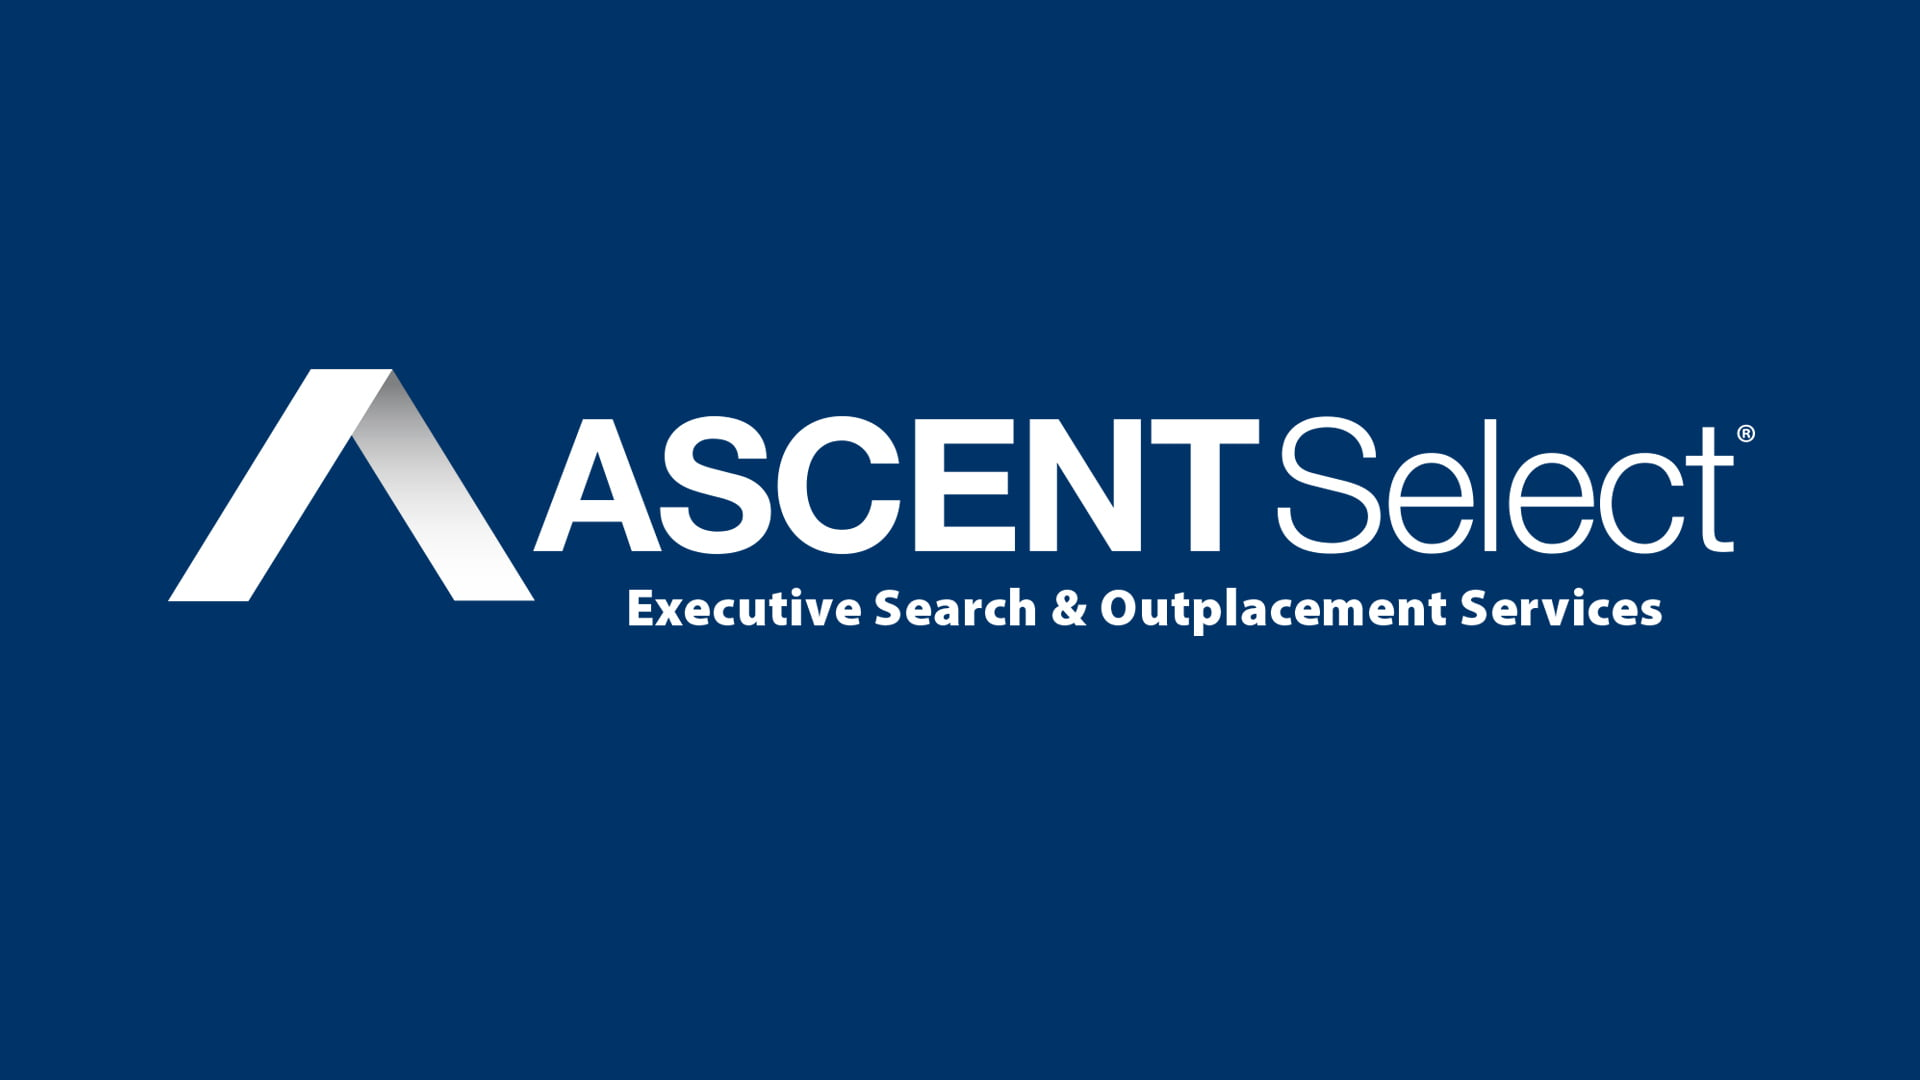 Specialized Executive Search Firm Provides Industry-Transforming Outplacement Support Services